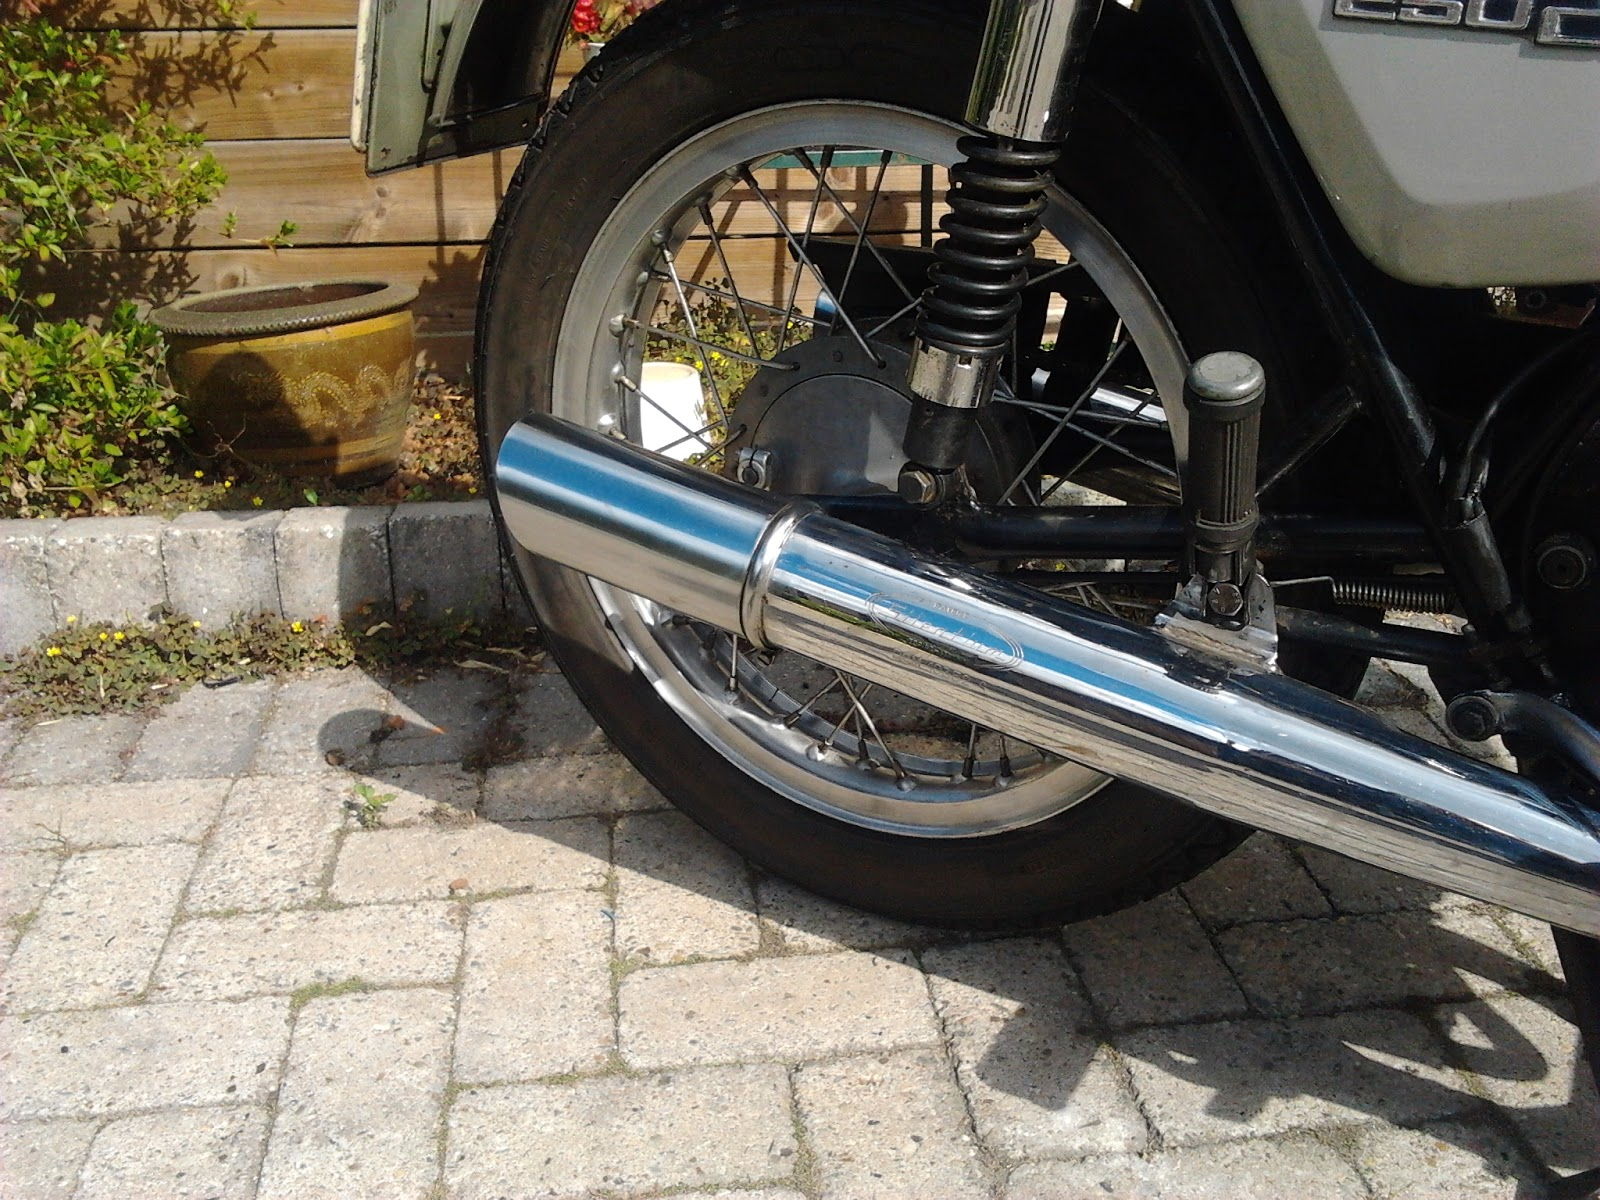 Caferacers RnR And More Stuff I Like: Augustus 2013